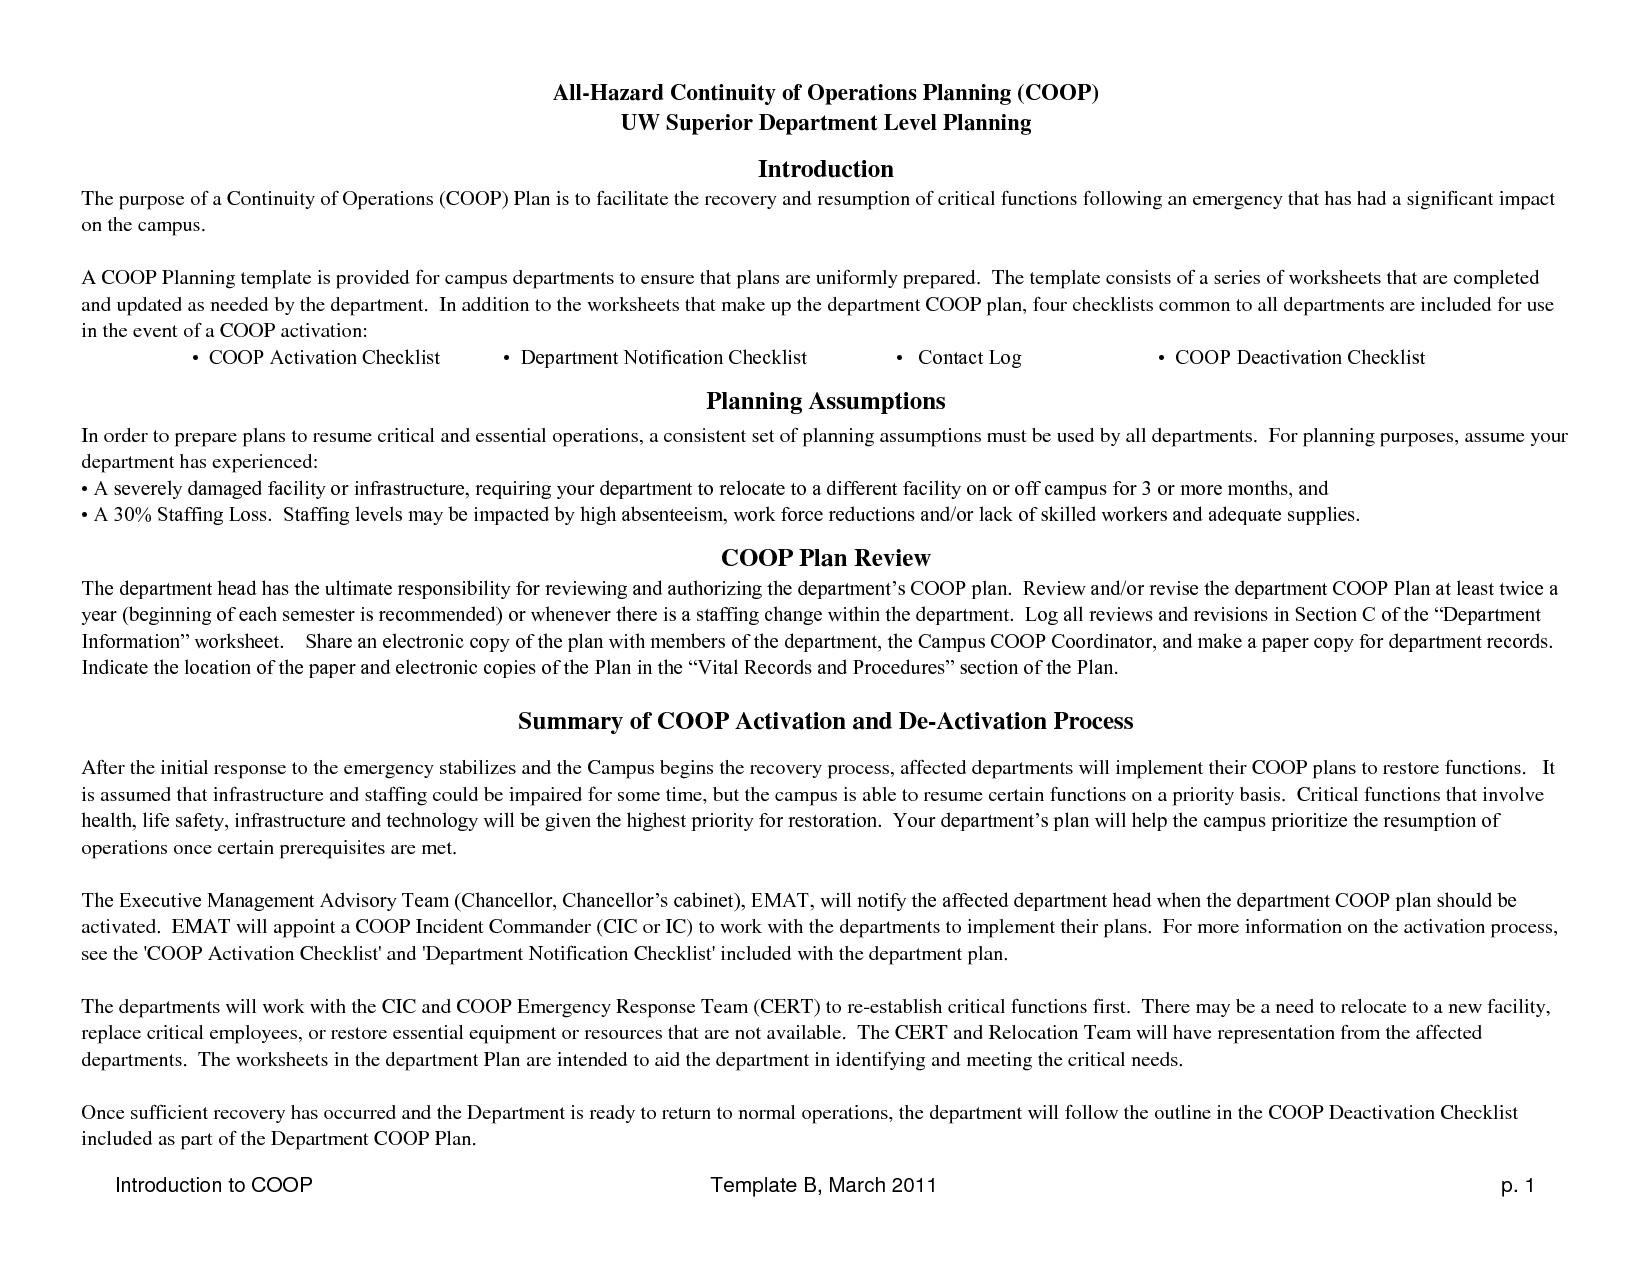 resume objective statement engineering - Common Resume Objectives